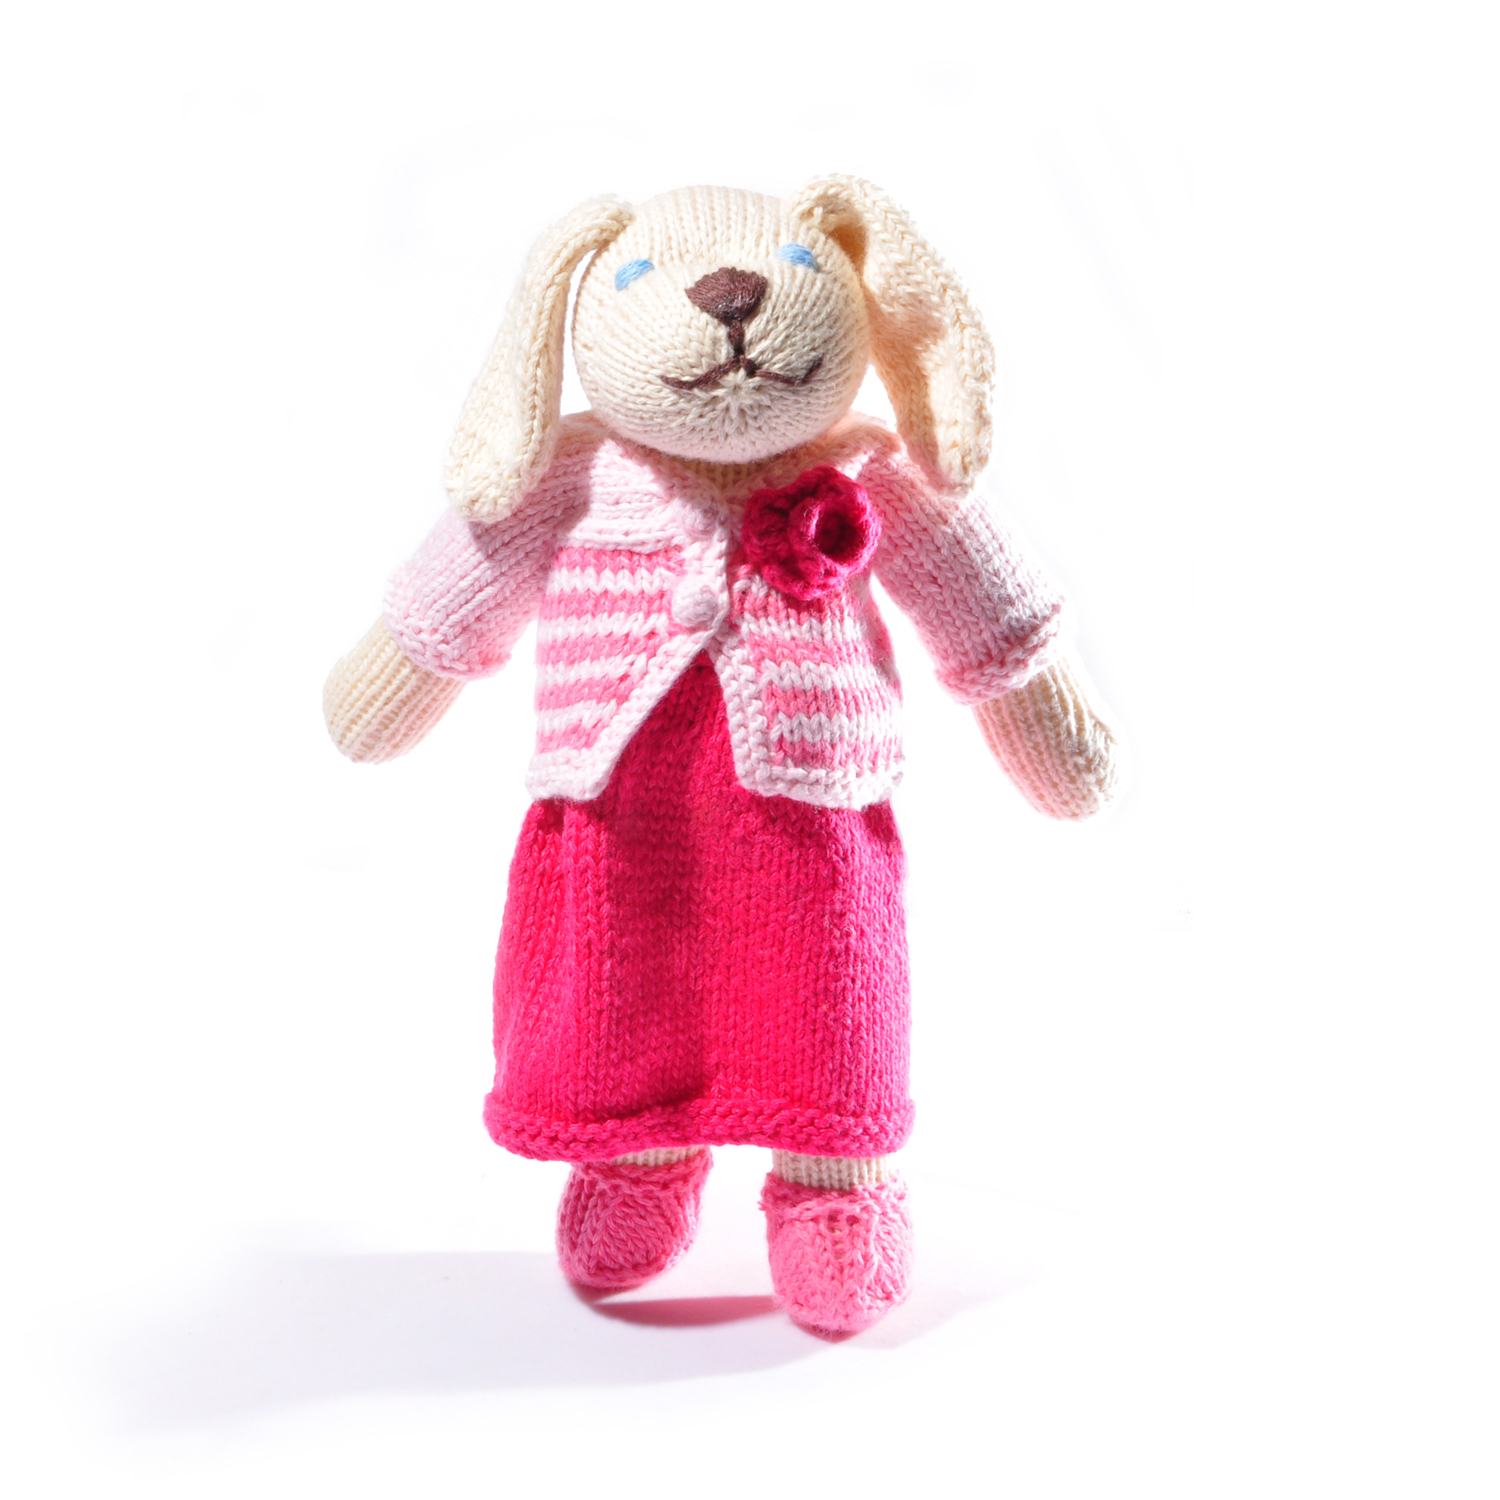 White Dog Toy in Outfit with Stripy Top